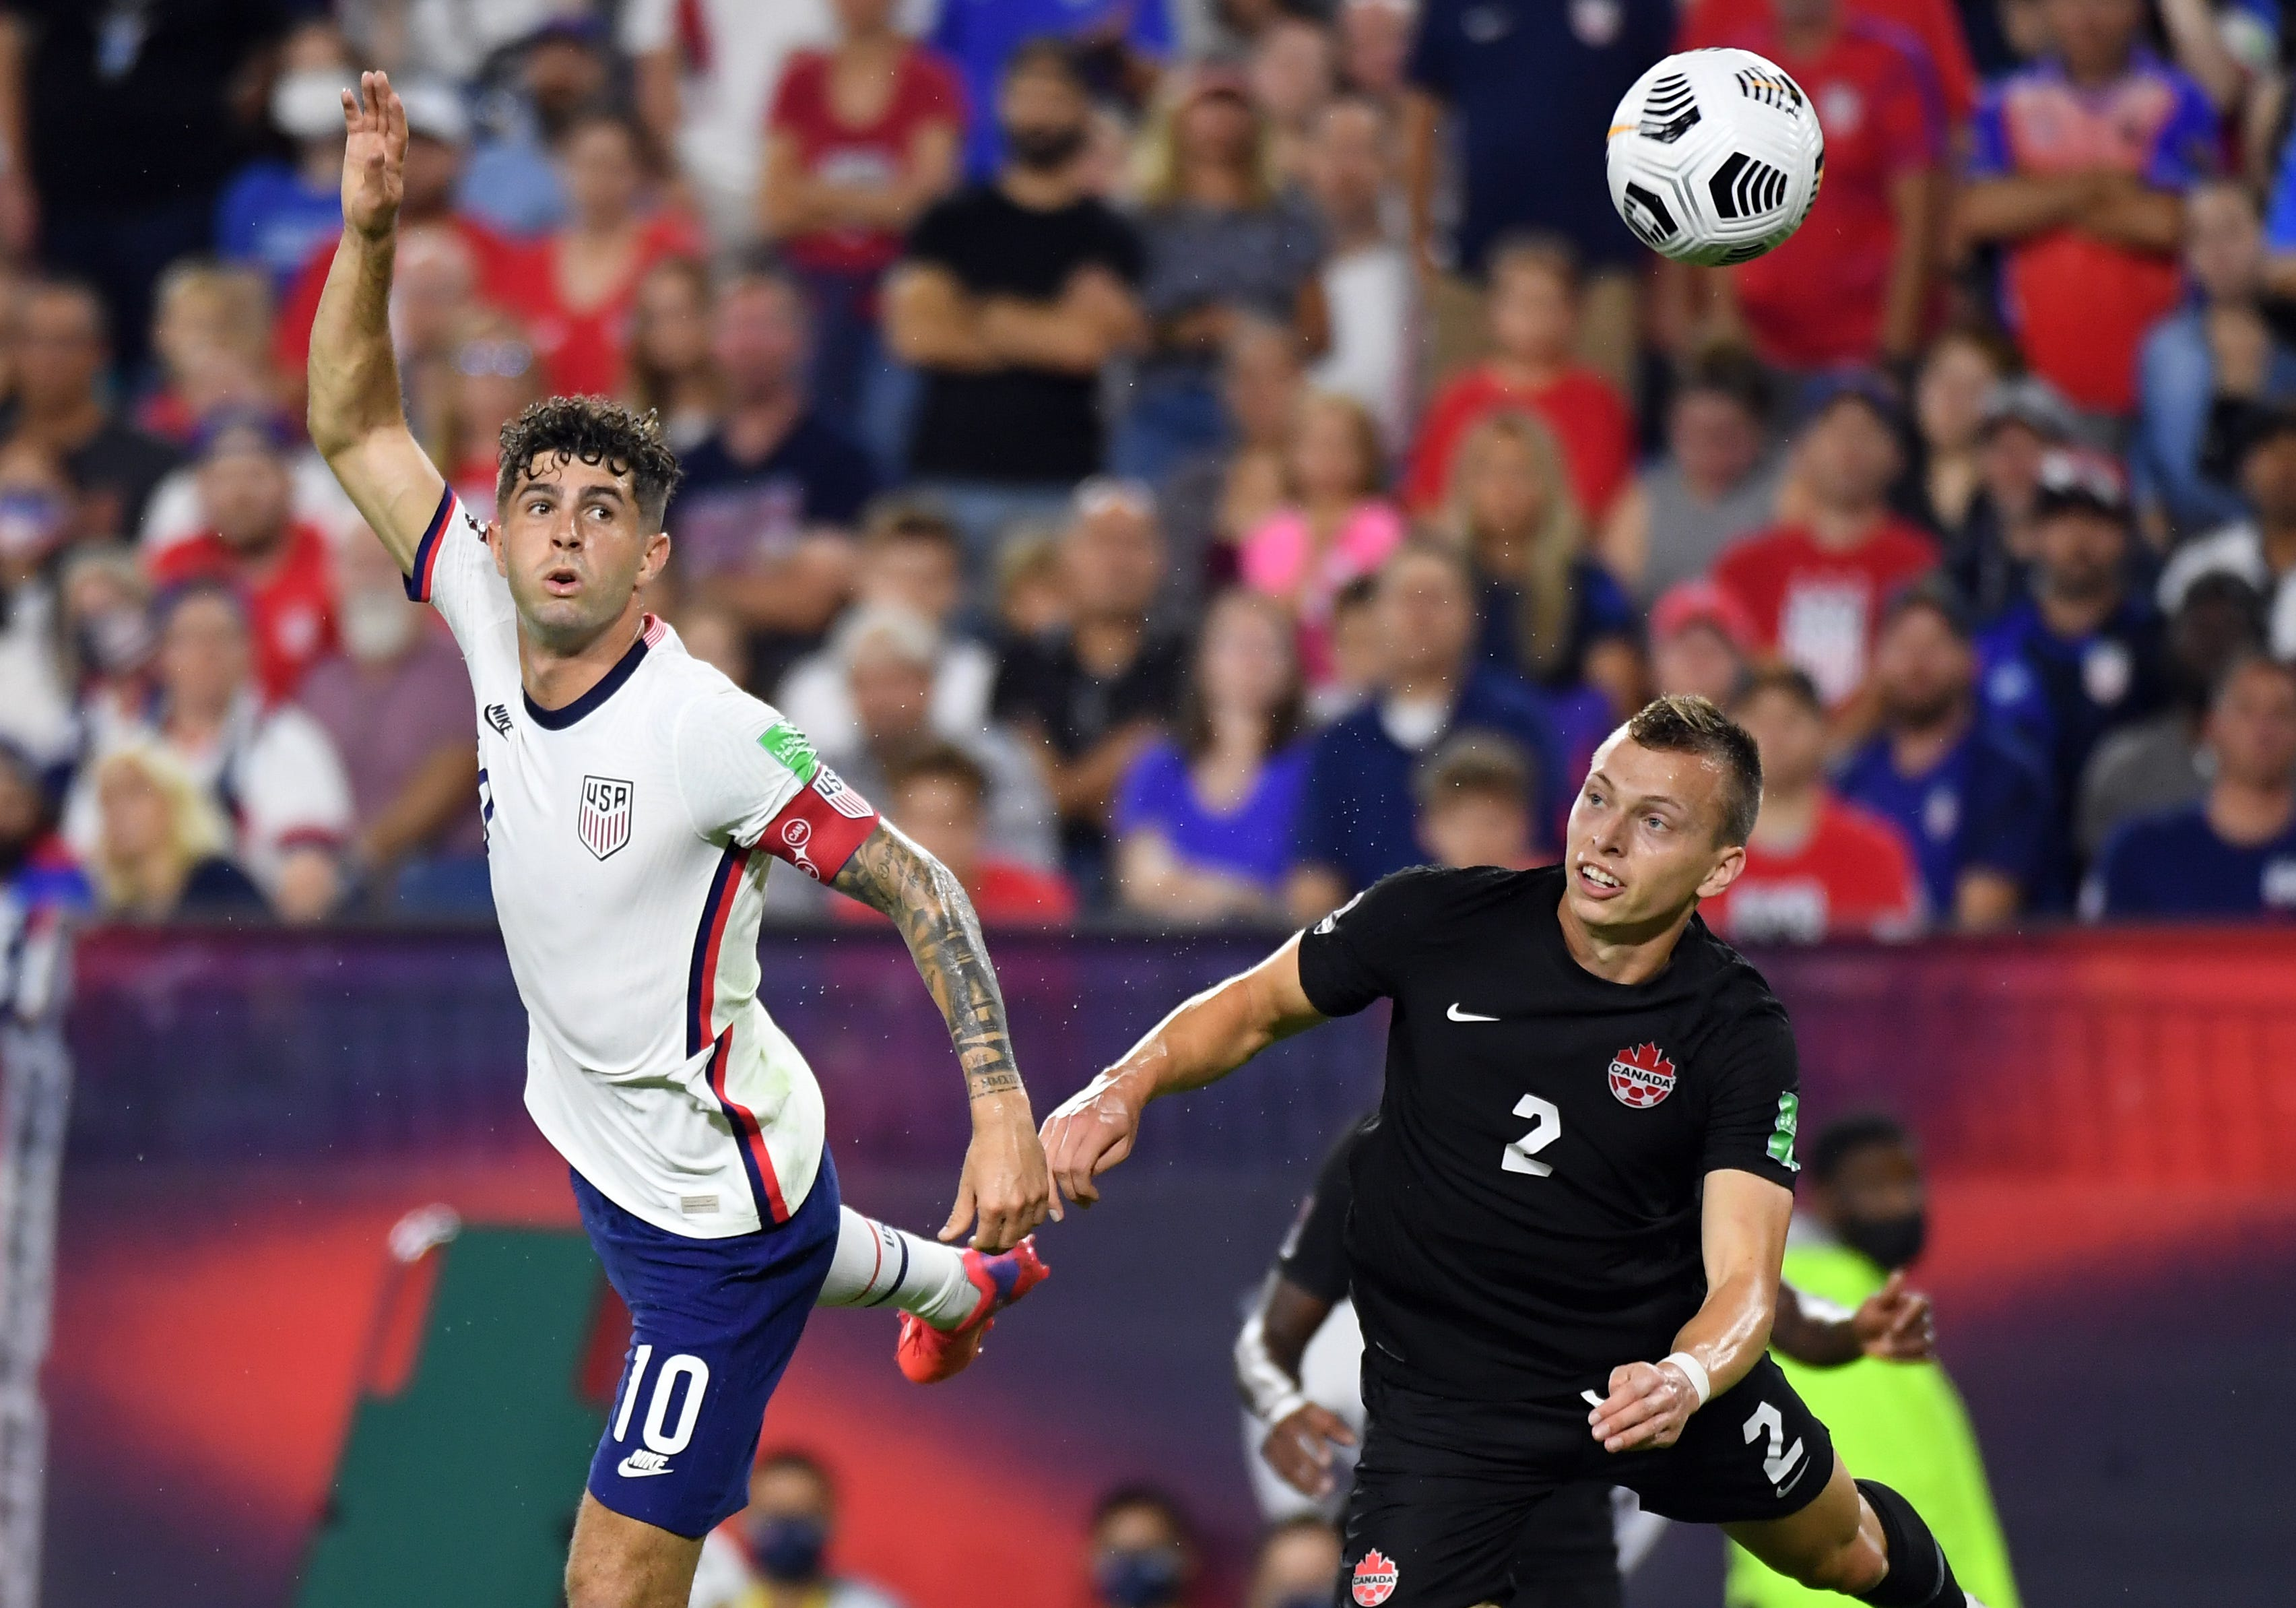 United States men s national soccer team held to another draw in World Cup qualifier vs. Canada